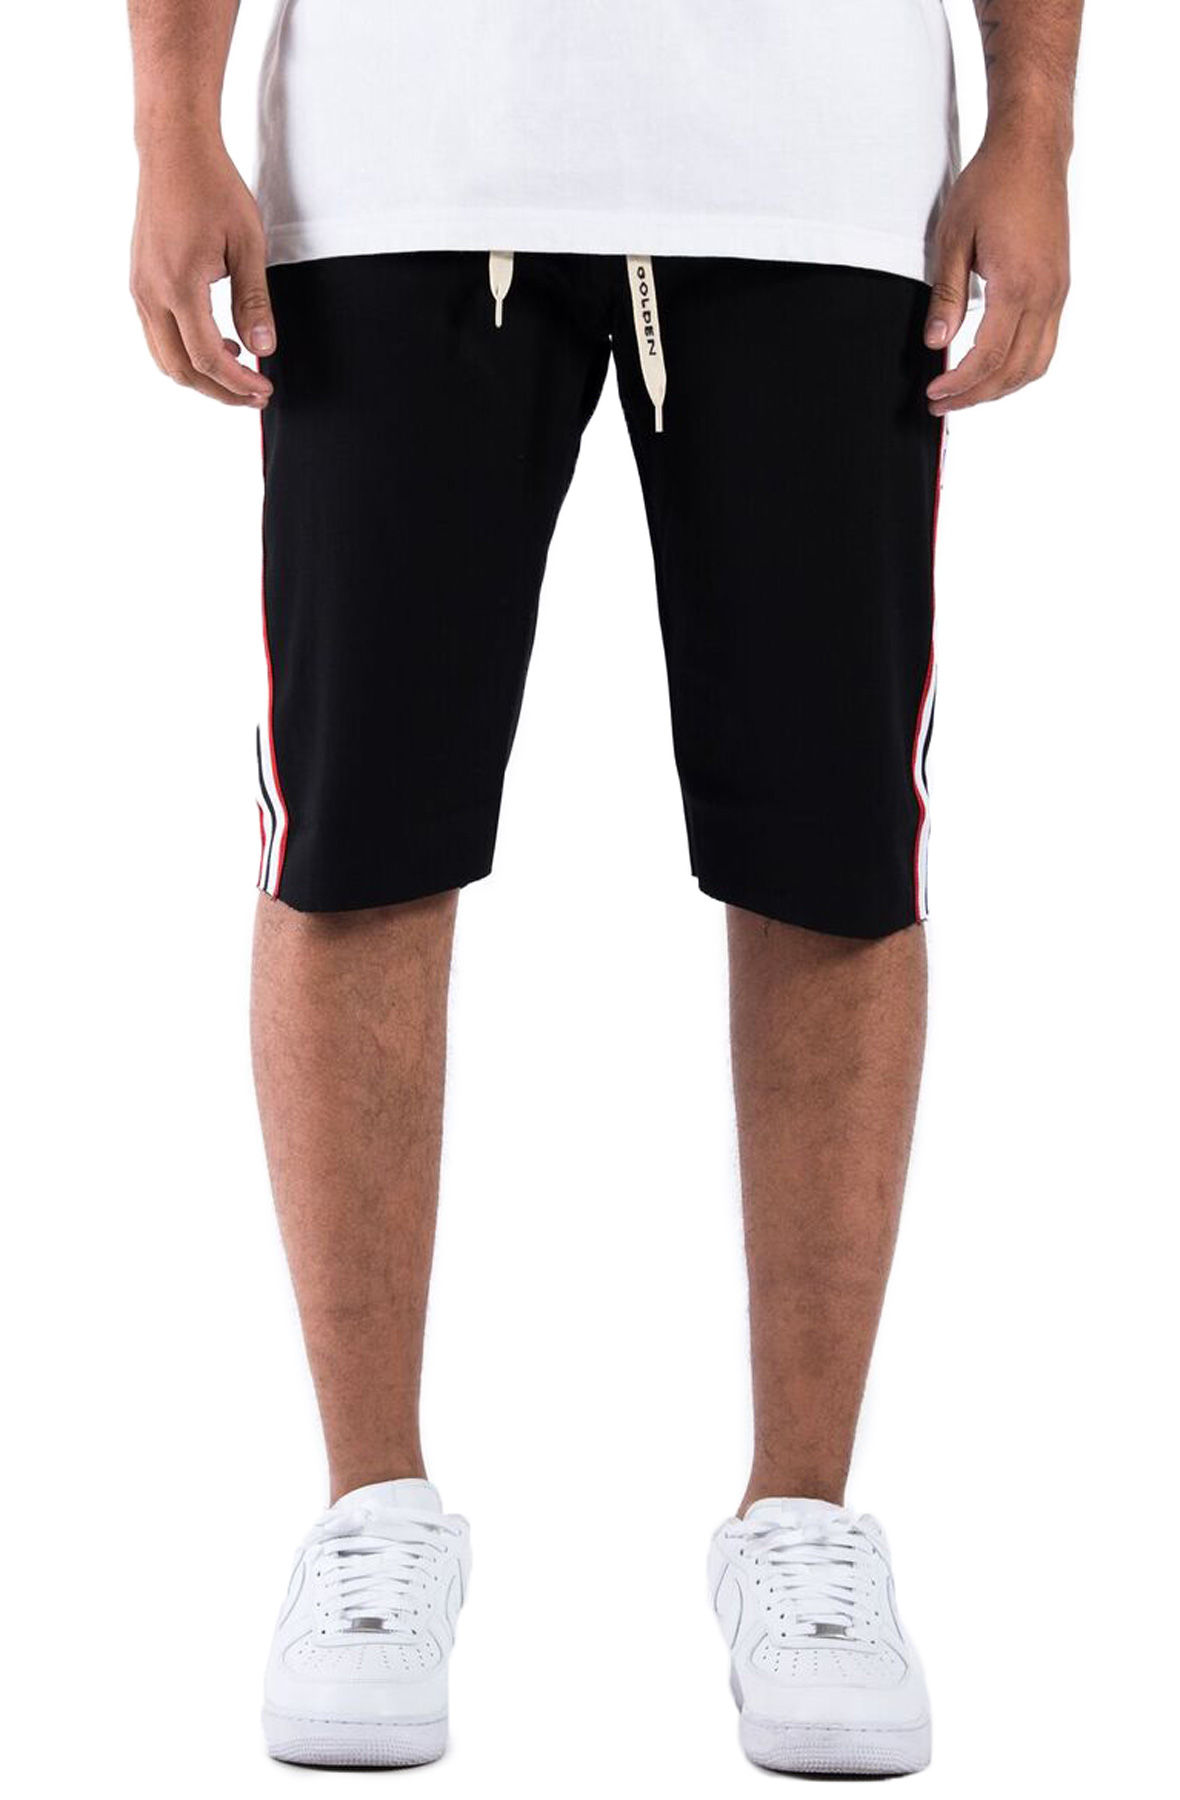 Image of The Union Hubert Track Shorts in Black